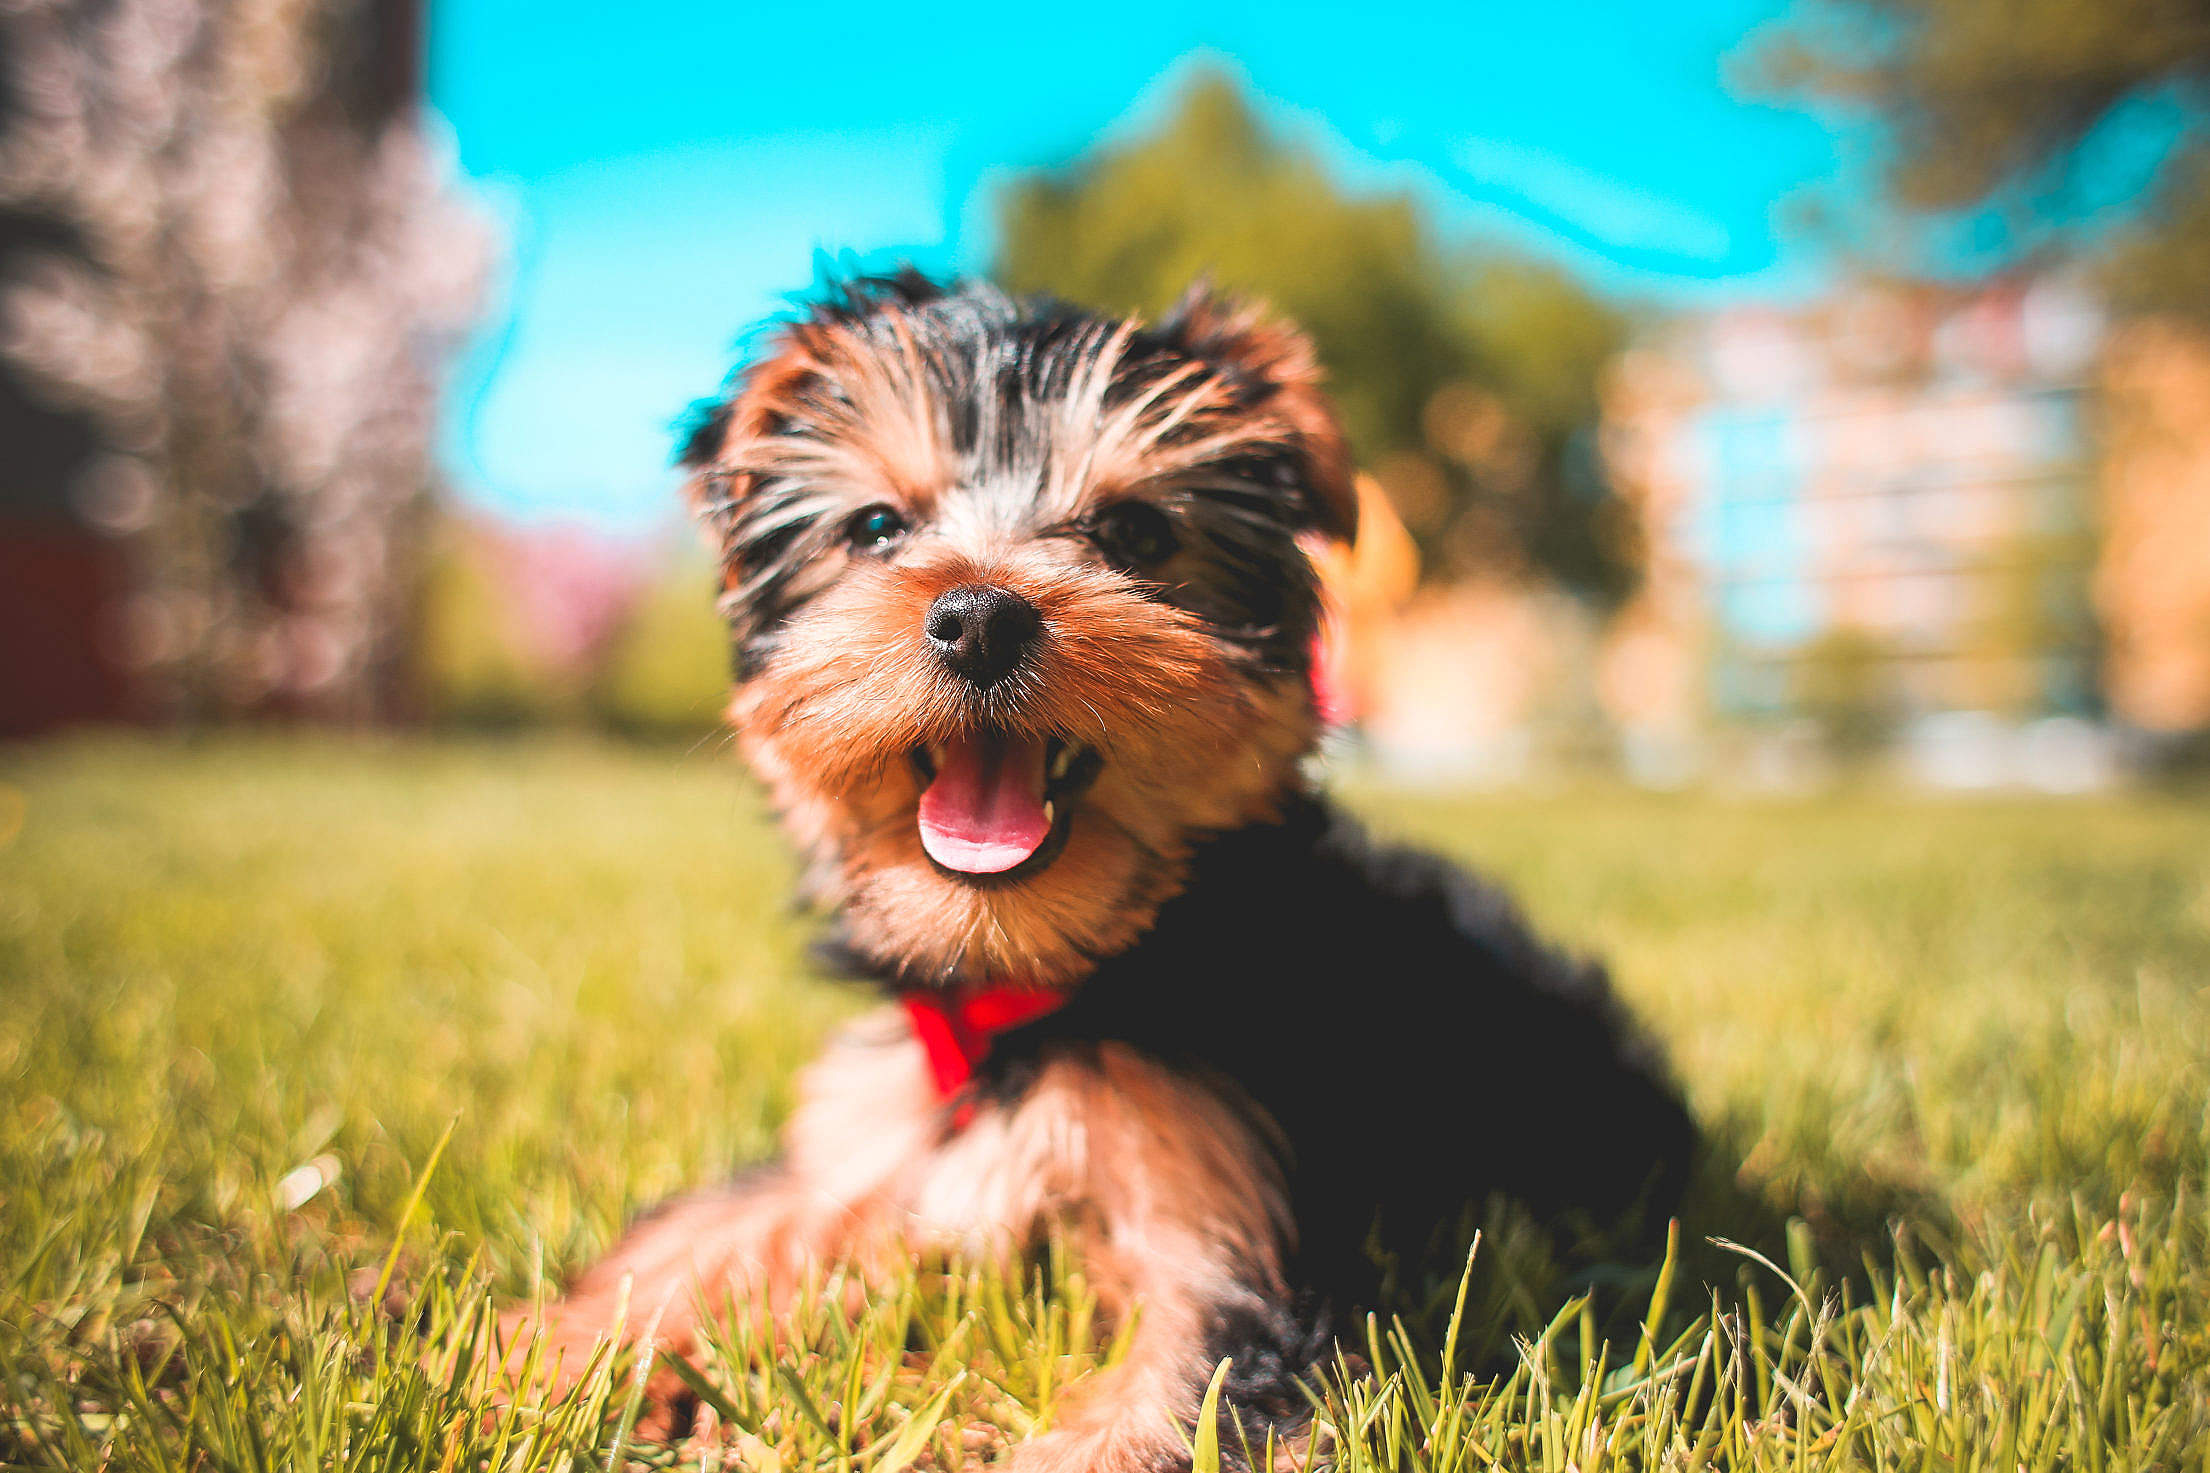 Cute Smiling Yorkshire-Terrier Puppy Free Stock Photo